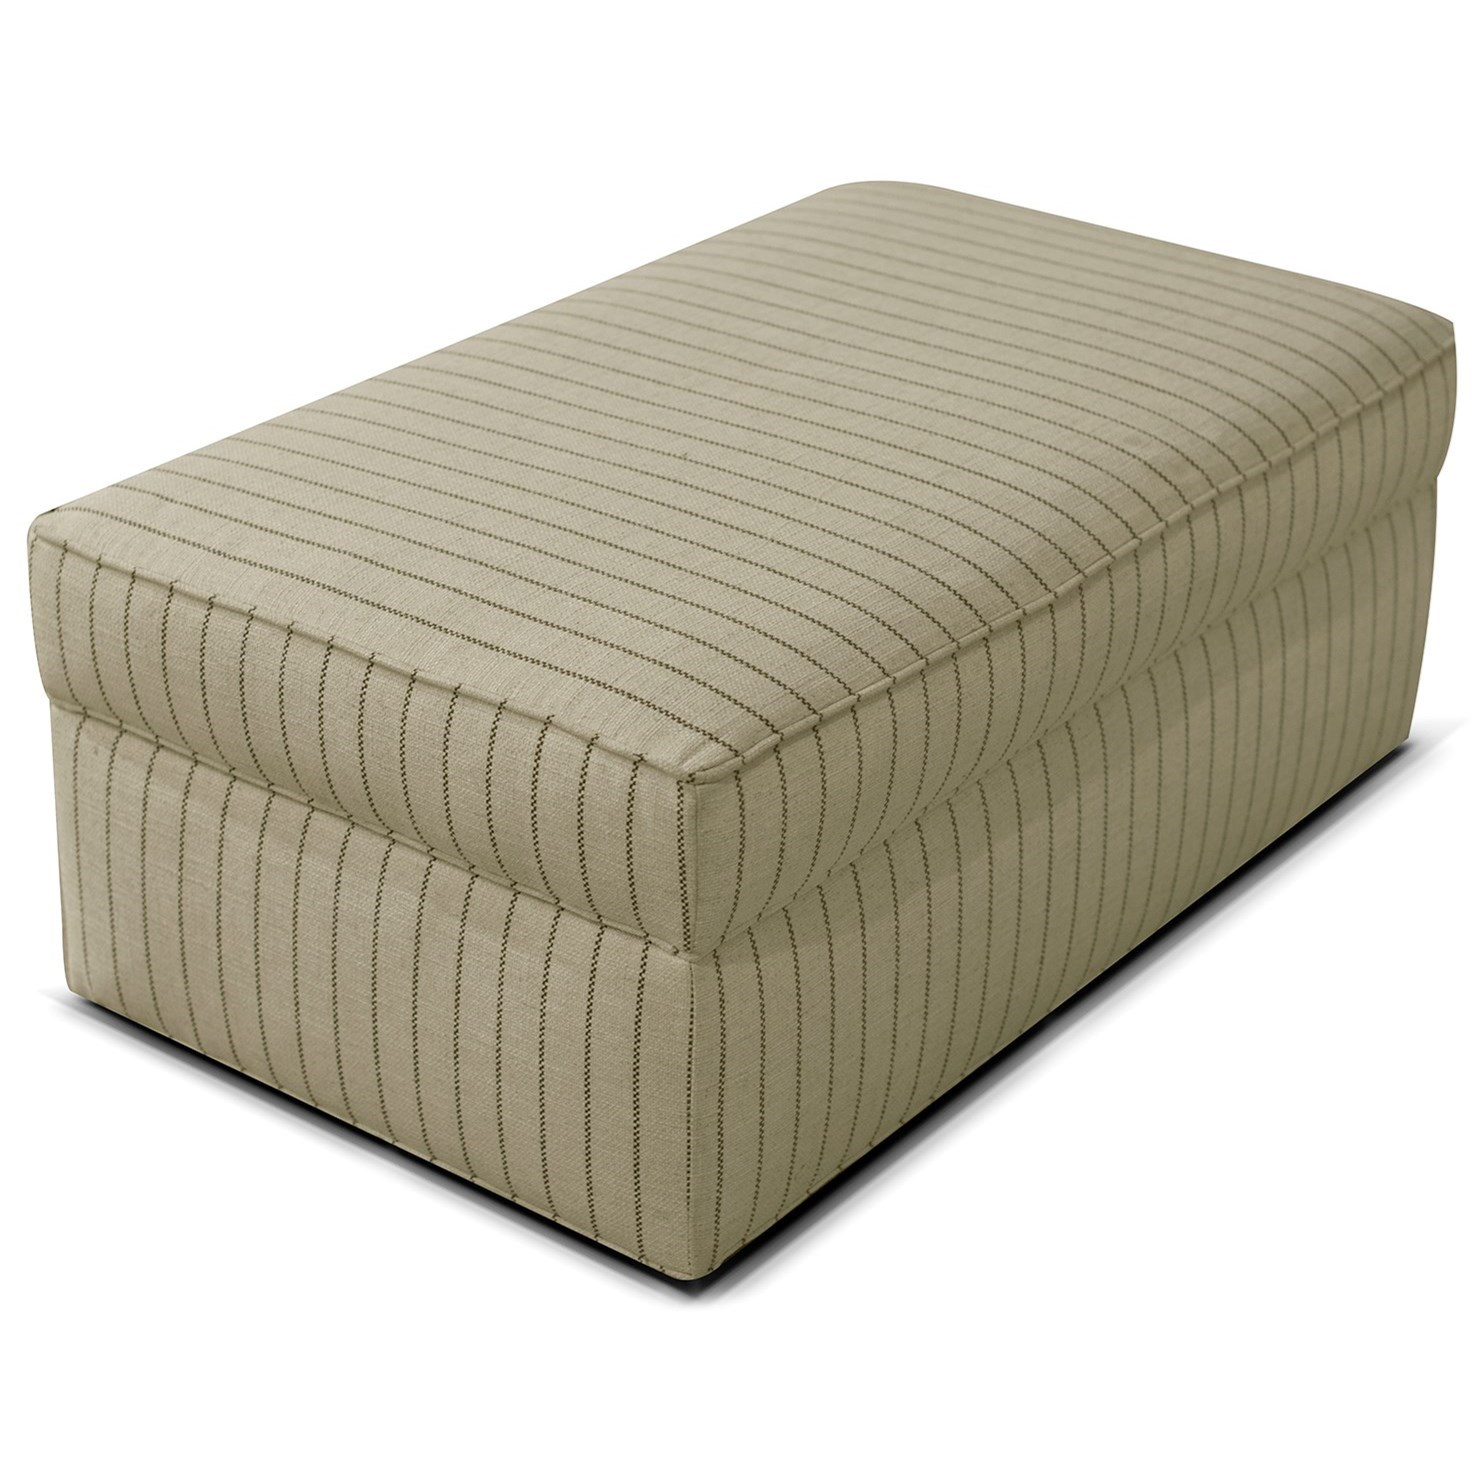 England Macy 2a00 81 Rectangular Storage Ottoman With